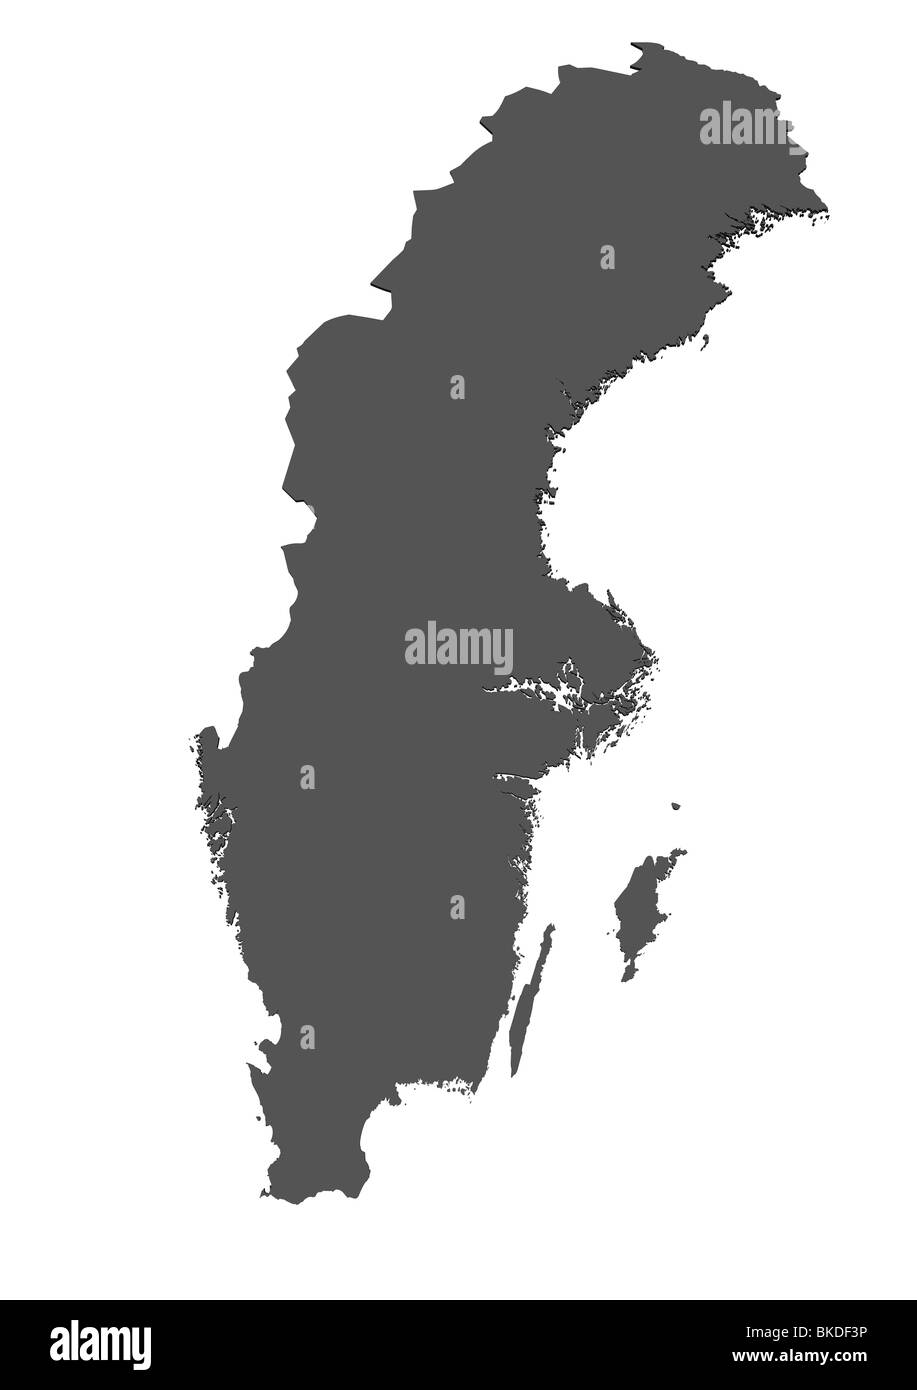 D Rendered Blank Map Of Sweden Without Shadow Stock Photo - Sweden blank map